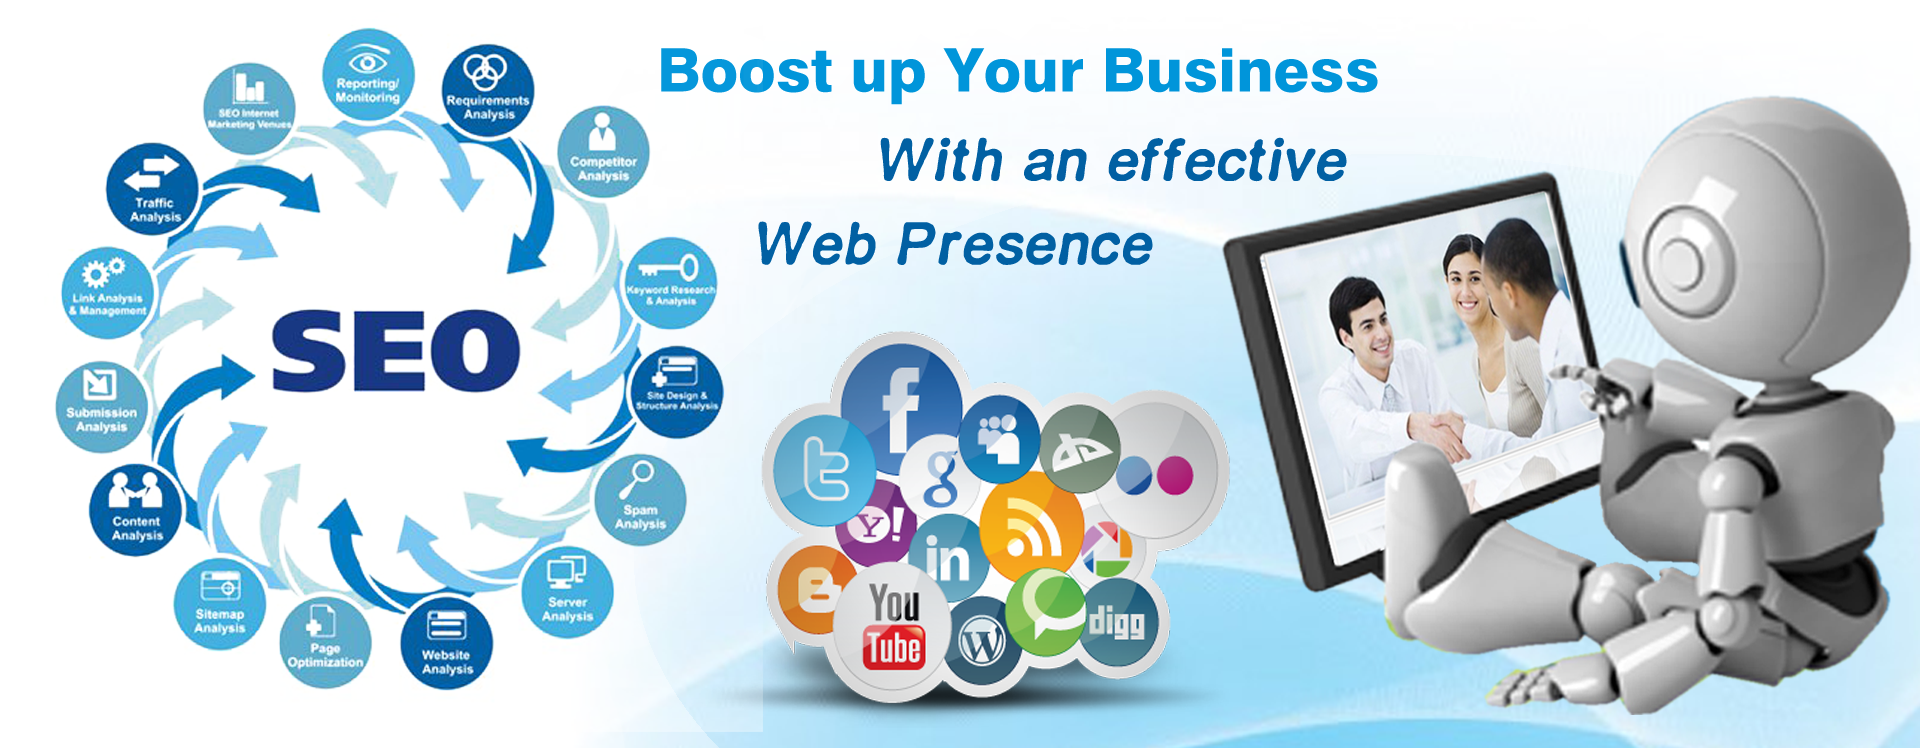 Your Website Can Also Reach The Top Ten